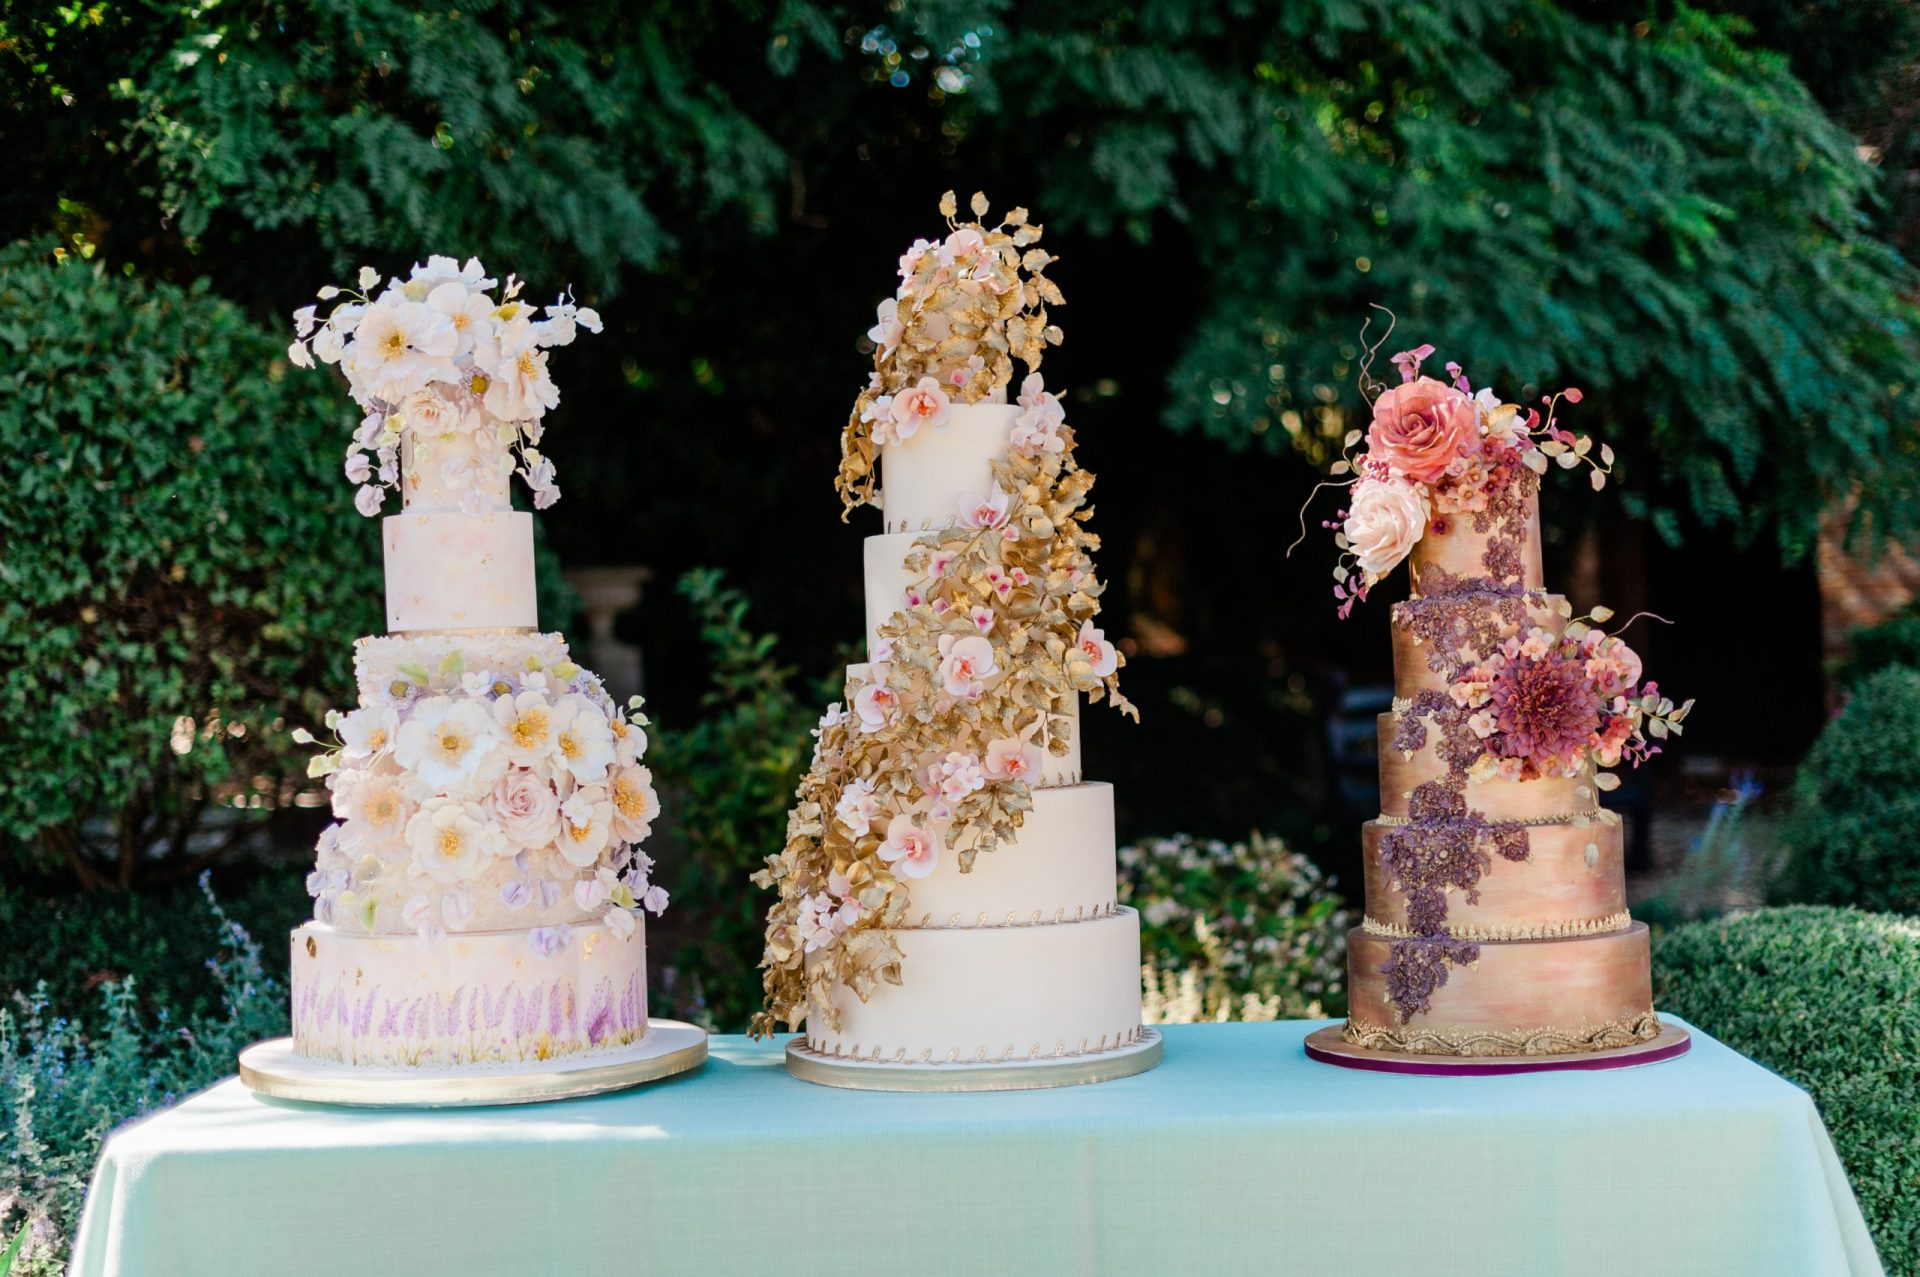 Three tiered wedding cakes by Unique Cakes by Yevnig on a turquoise table